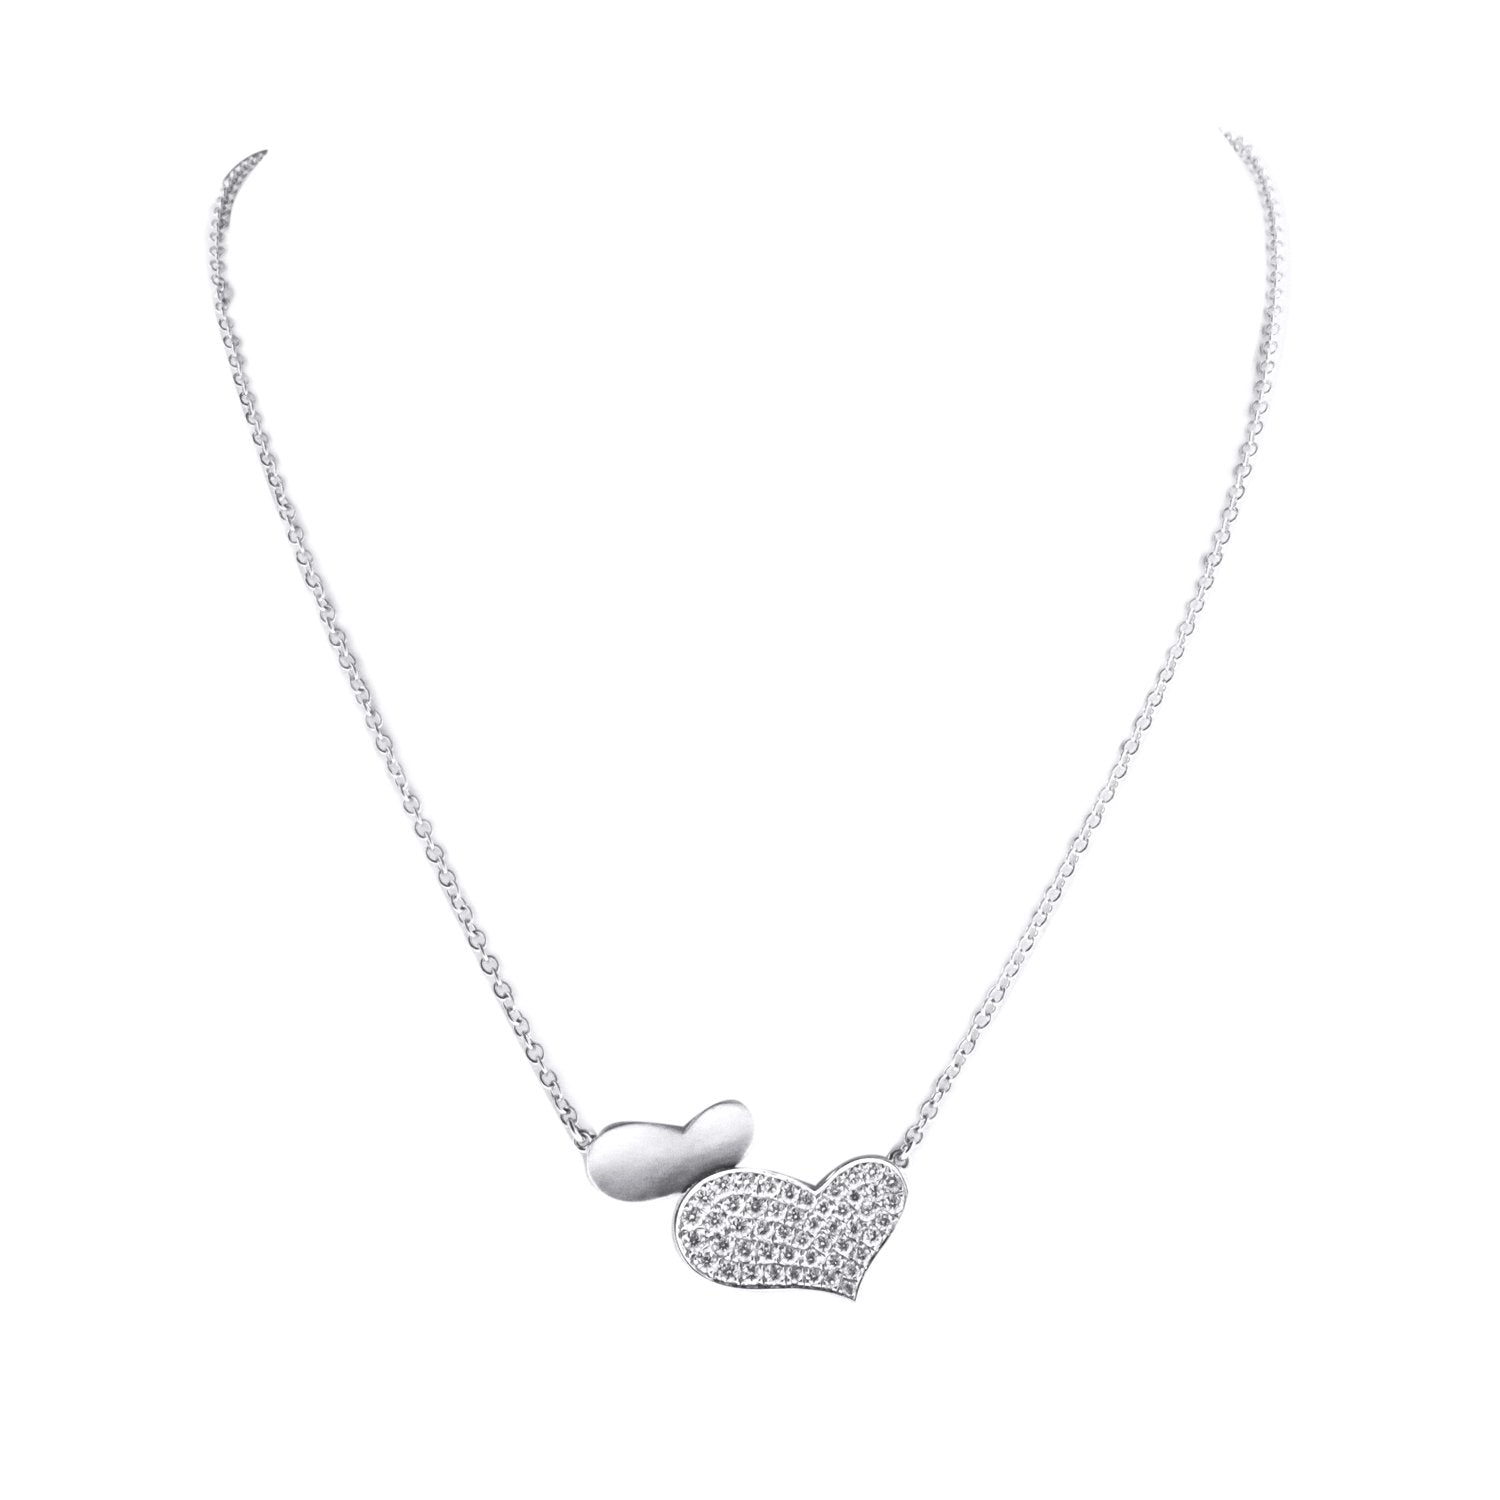 18K White gold Double Heart Diamond Pendant with Chain 0.54CT